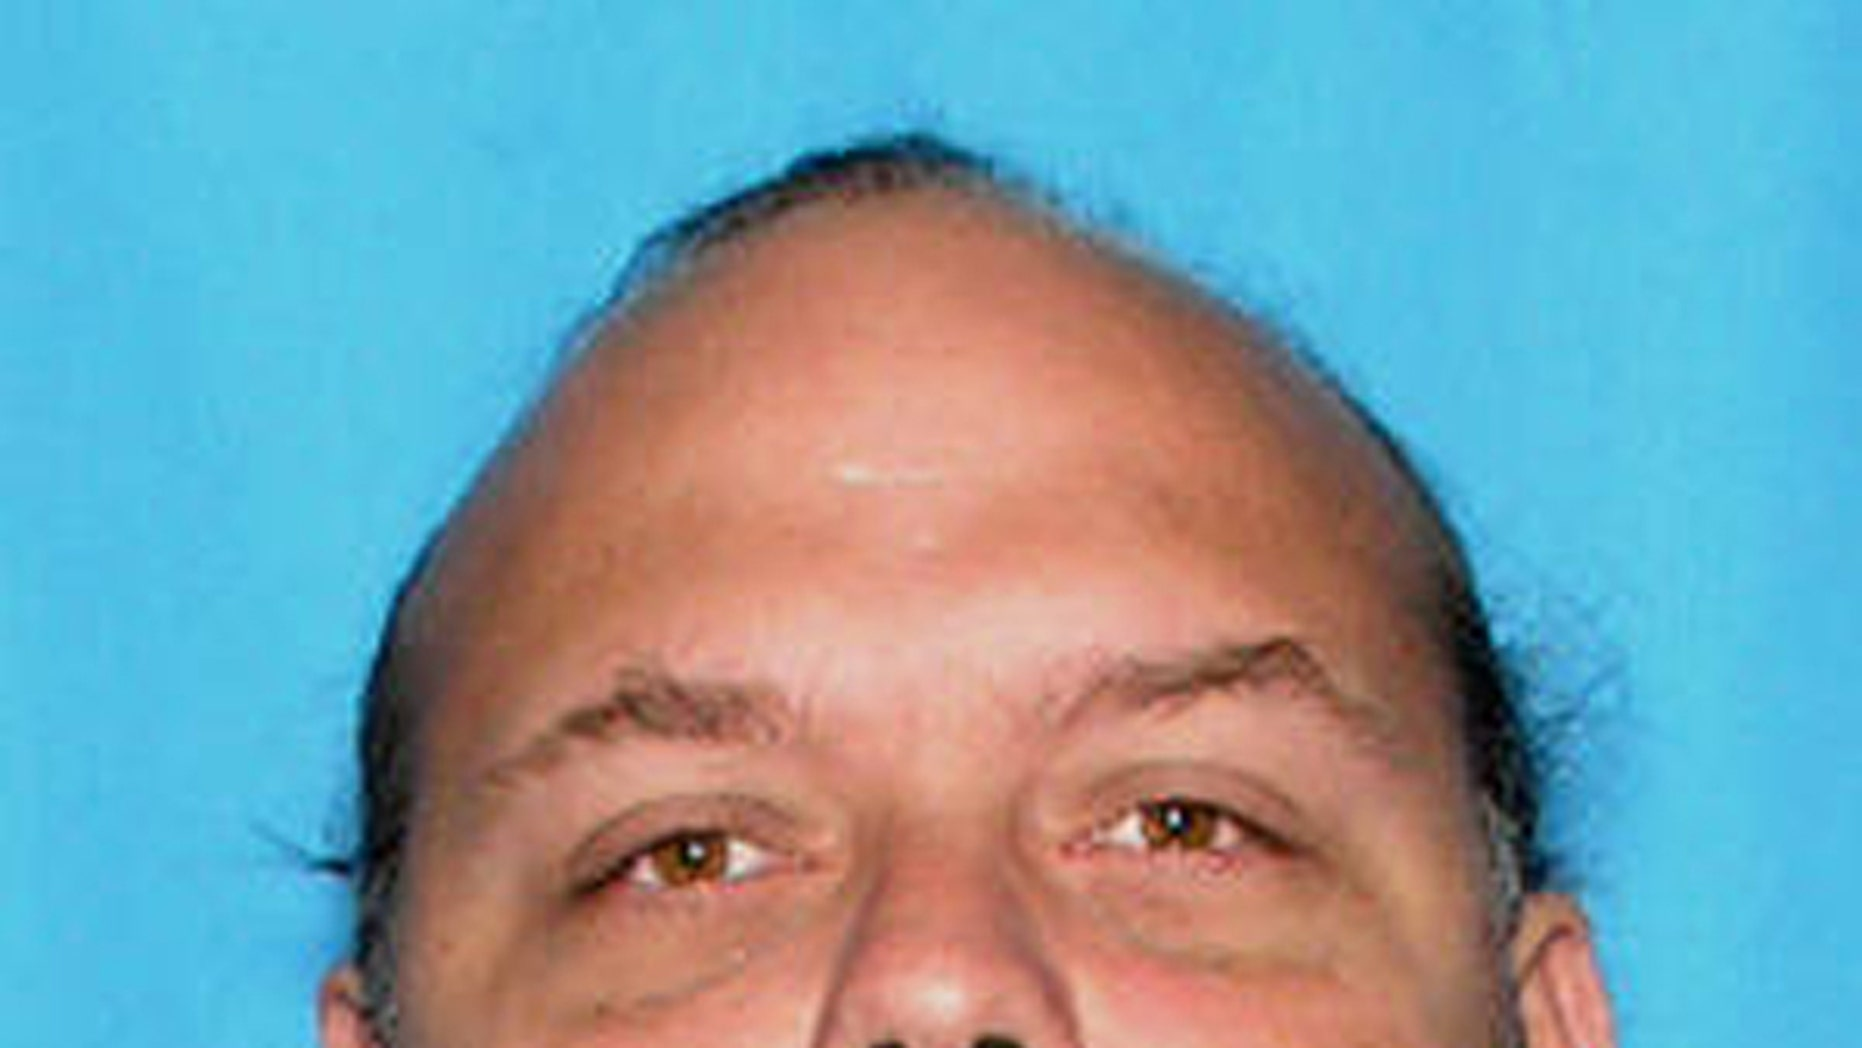 This image provided by the Florida Department of Law Enforcement shows an undated photo of Timothy Poole. Orlando television station WKMG reported Wednesday Dec. 10, 2014 that Poole purchased the $3 million winning ticket last weekend at a convenience store in Mount Dora, near Orlando. Poole is listed on a Florida Department of Law Enforcement website as a sexual predator (AP Photo/Florida Department of Law Enforcement)